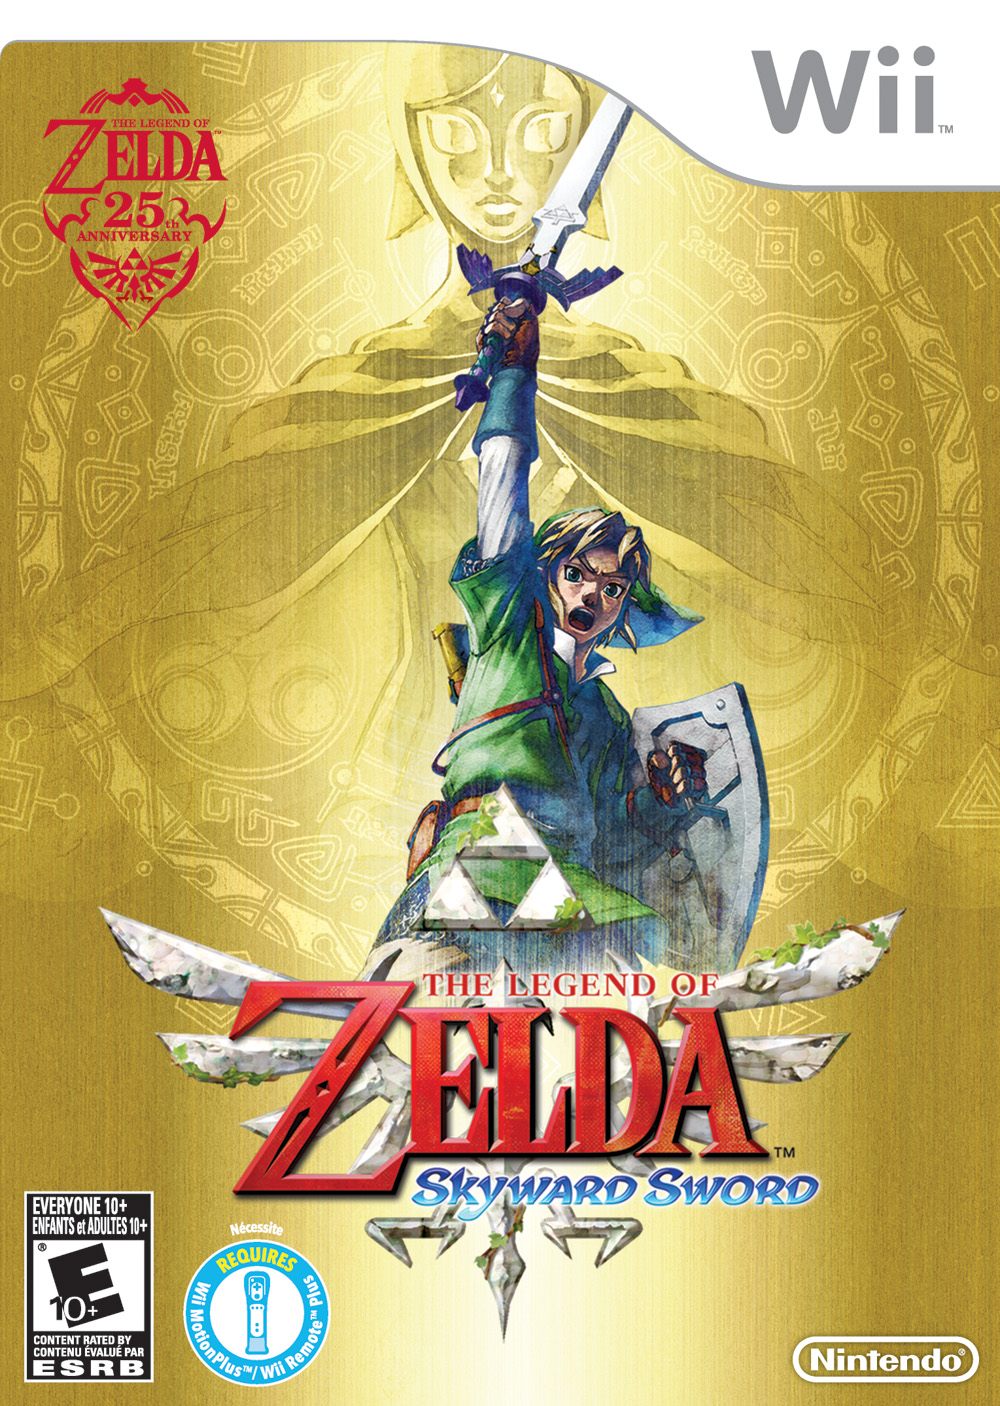 Skyward Sword NA Box Art.jpg